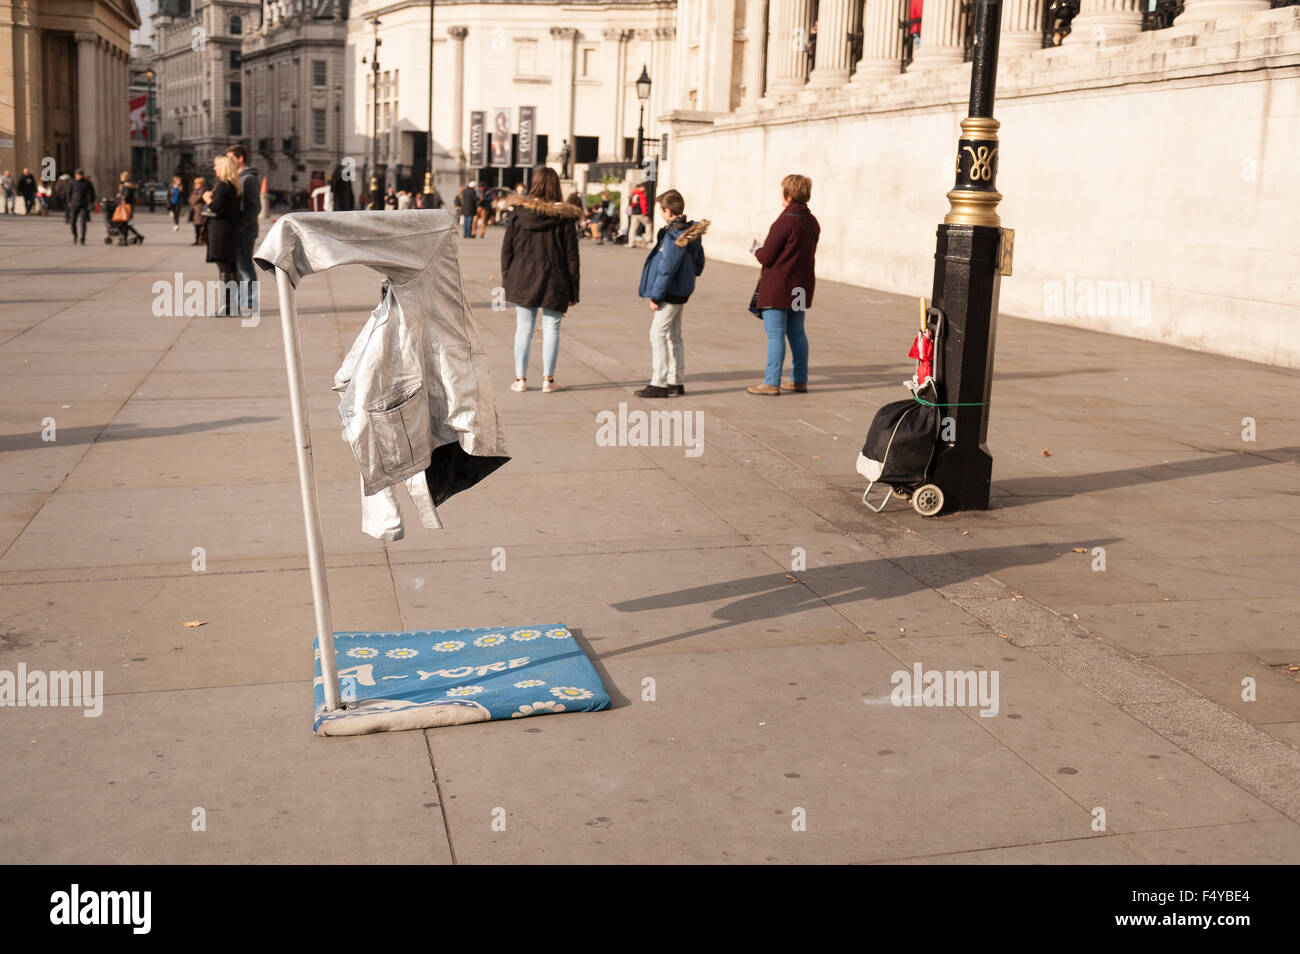 Yoda Wars break out as Romanian street performers dressed Star Wars character battle each other for the most lucrative - Stock Image